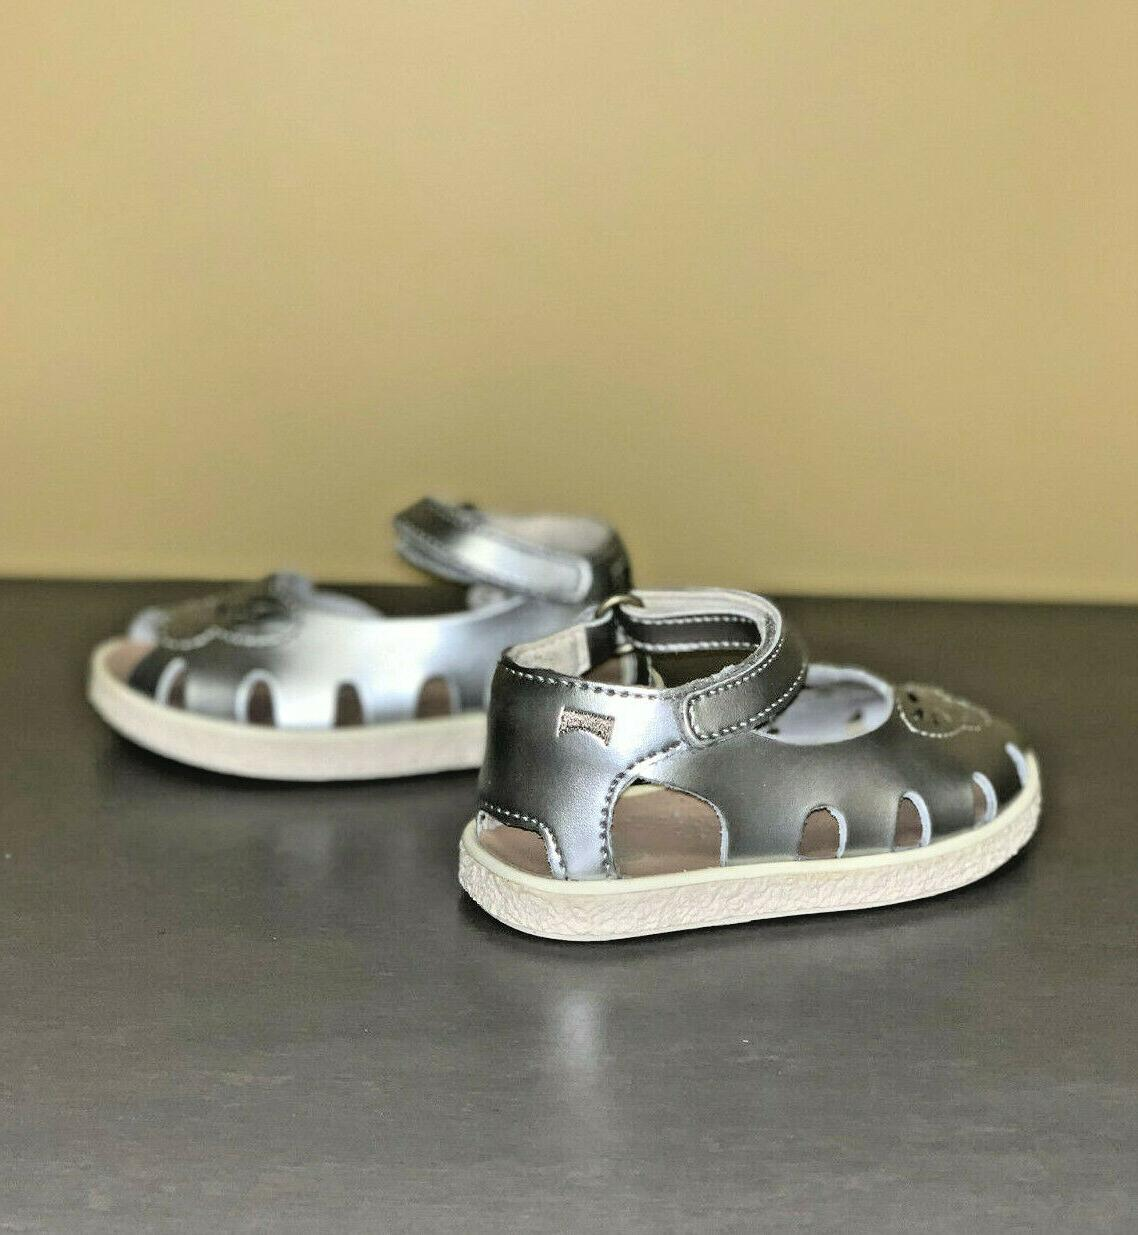 Baby Shoes Camper Leather Sandals Shoes